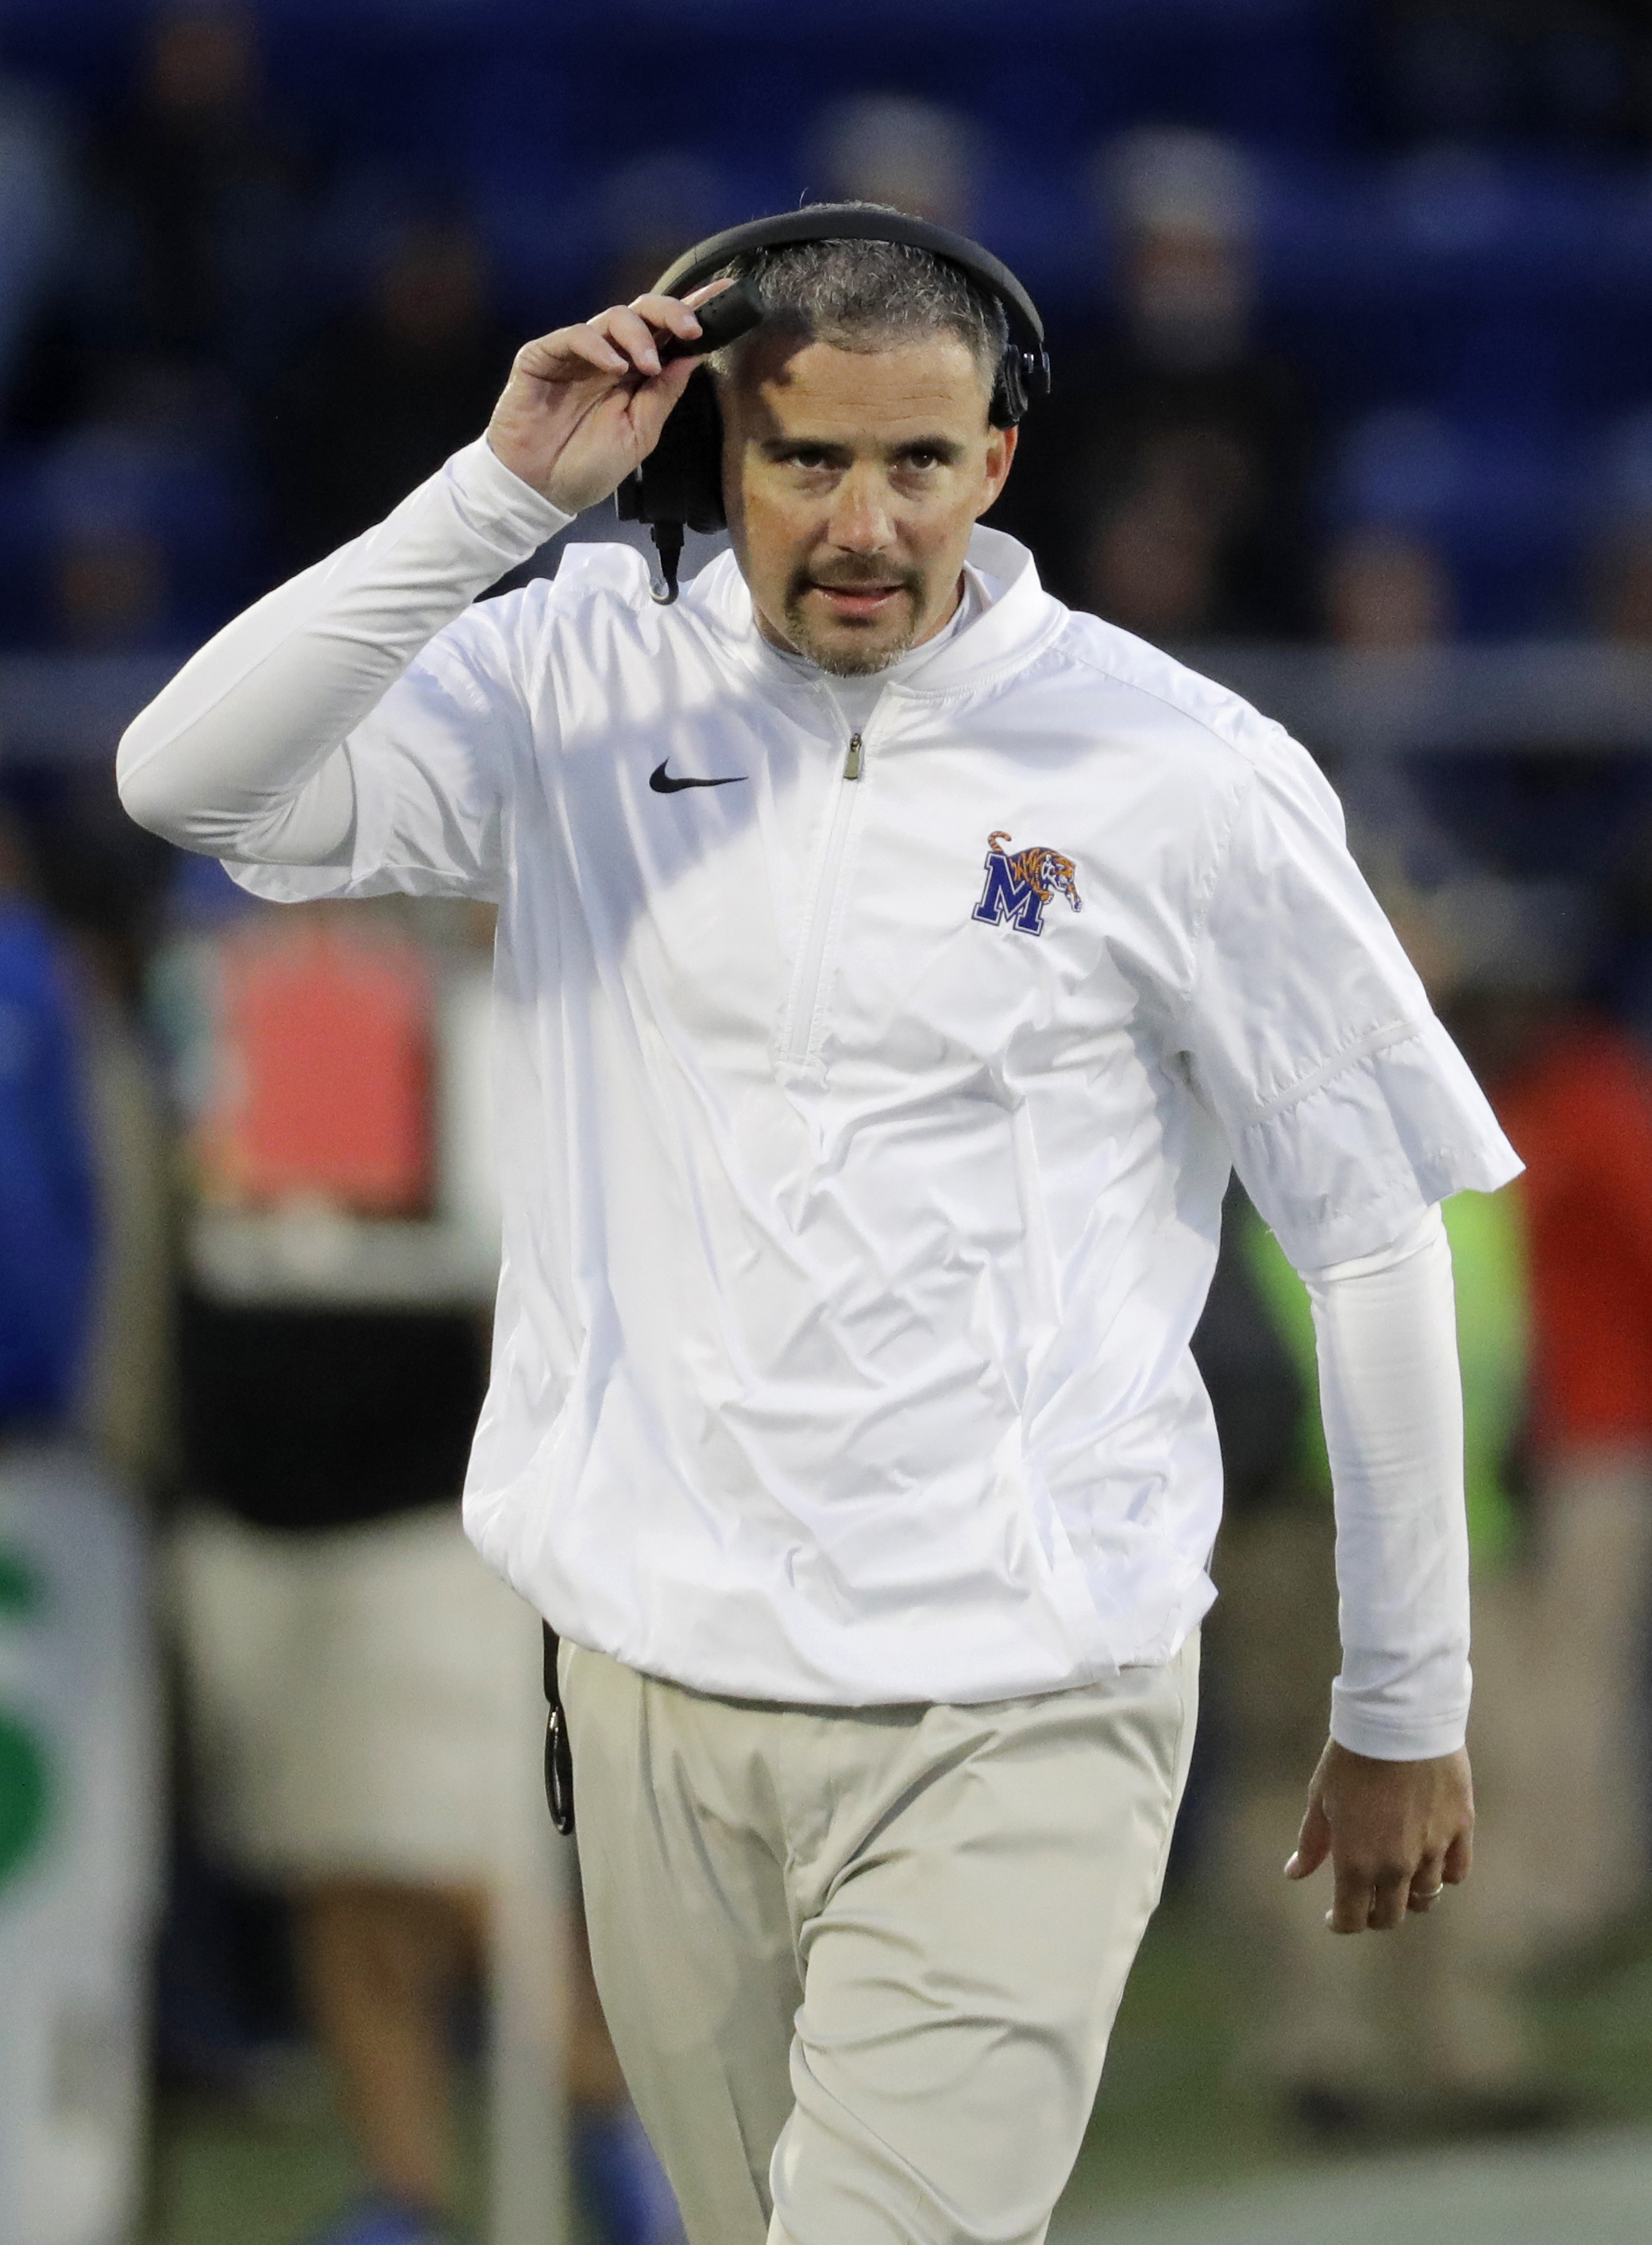 FILE - In this Oct. 22, 2016, file photo, Memphis head coach Mike Norvell walks on the field in the second half of an NCAA college football game against Navy in Annapolis, Md. Houston plays Memphis on Saturday. (AP Photo/Patrick Semansky, File)